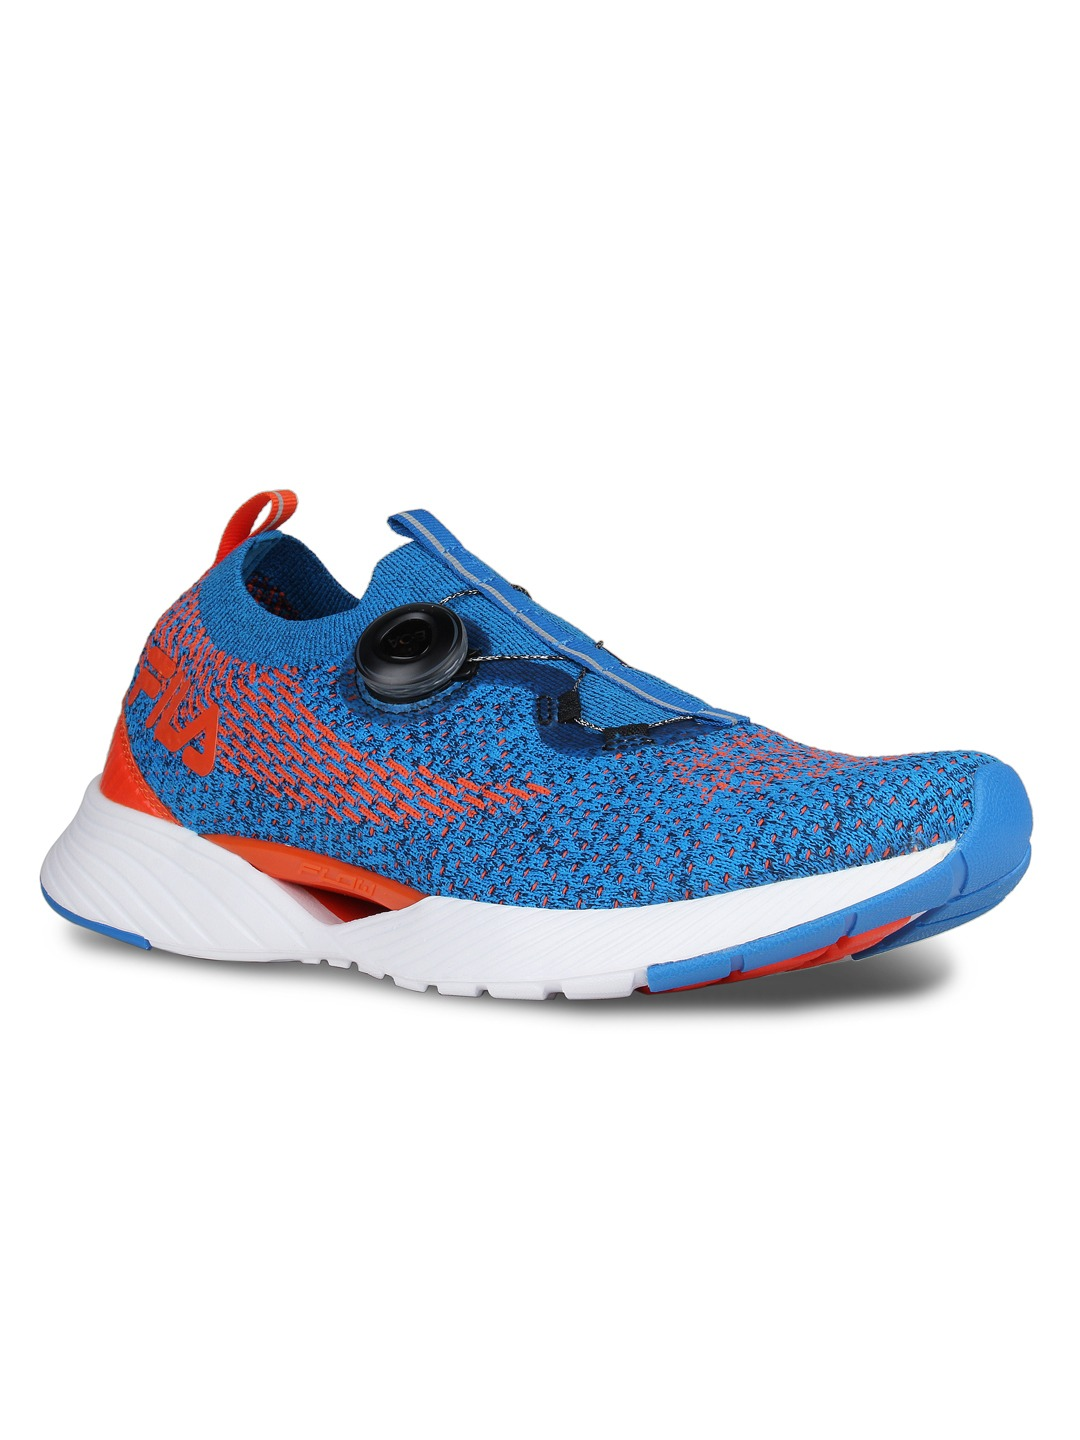 Blue & Orange V.1 Woven Design Running Shoes